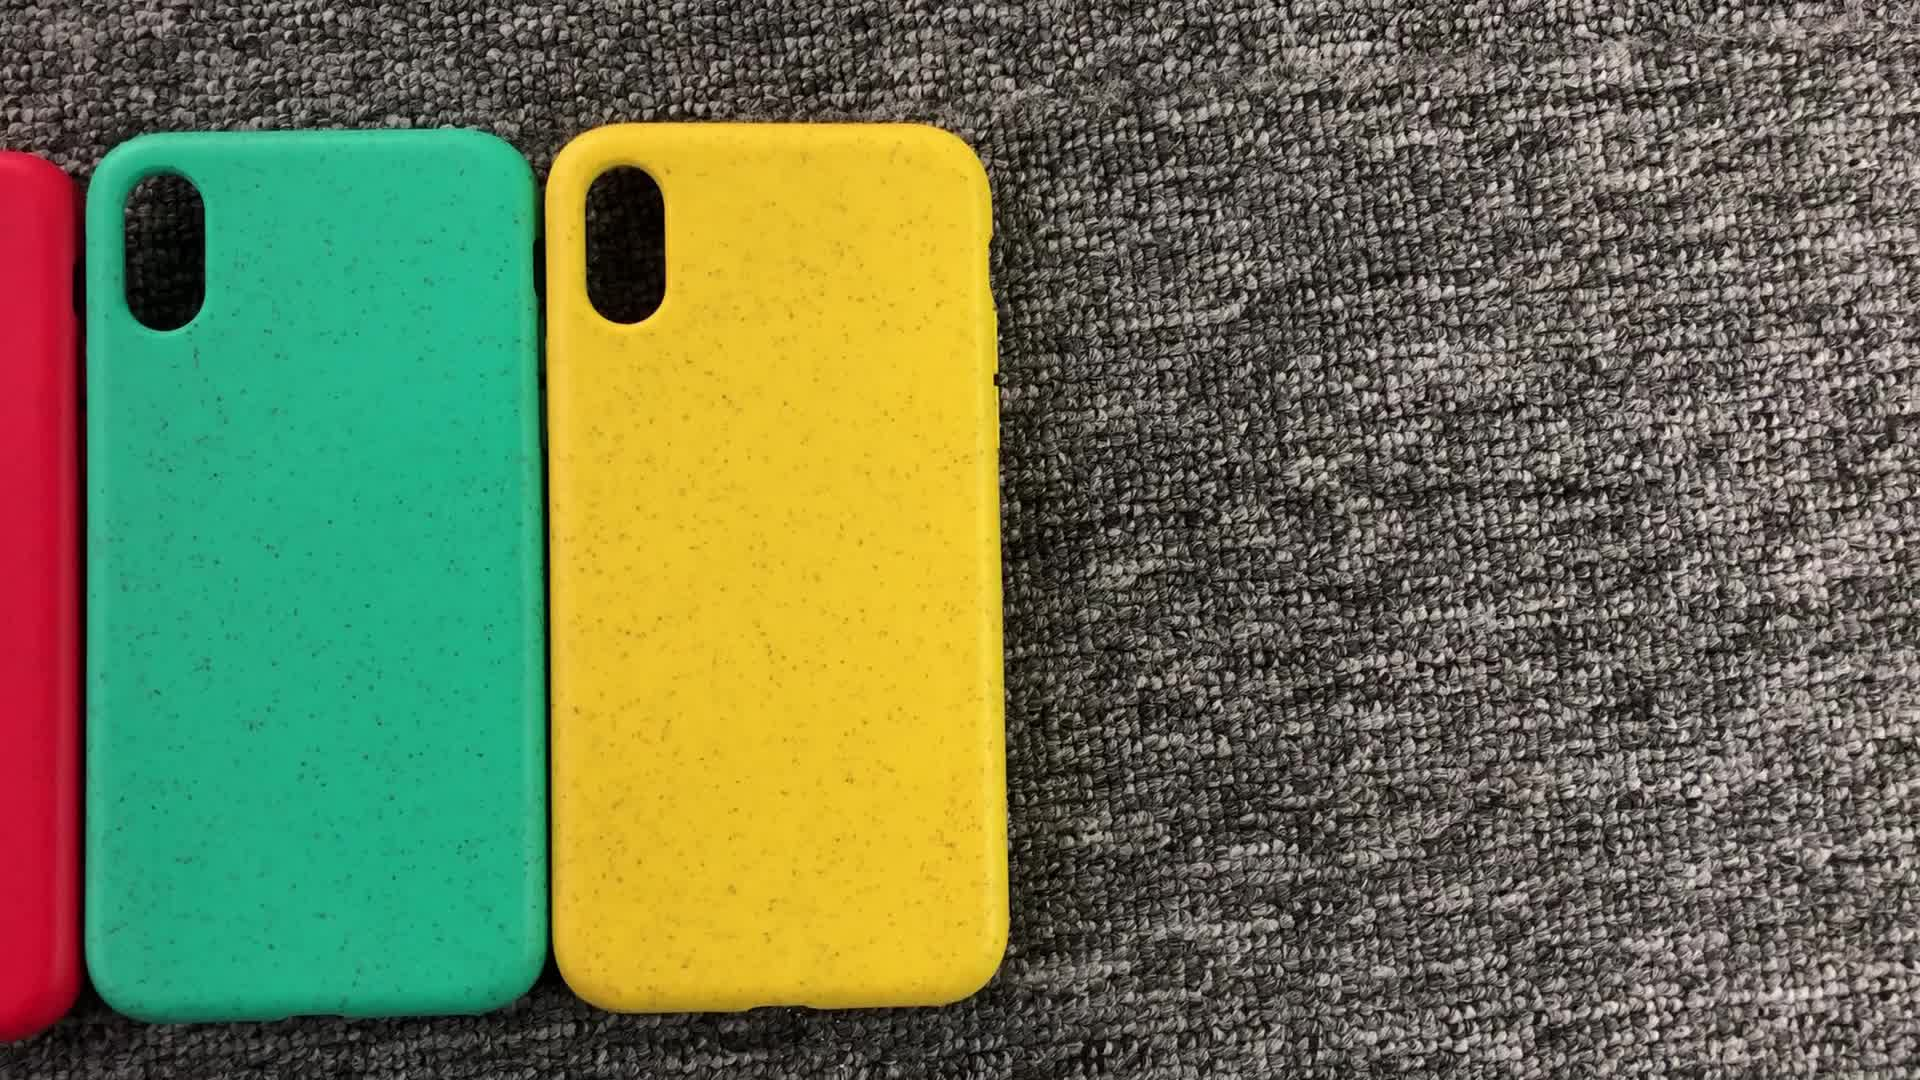 Laser Print Bio degradable Compostable Recycled Phone Case For iPhone 11